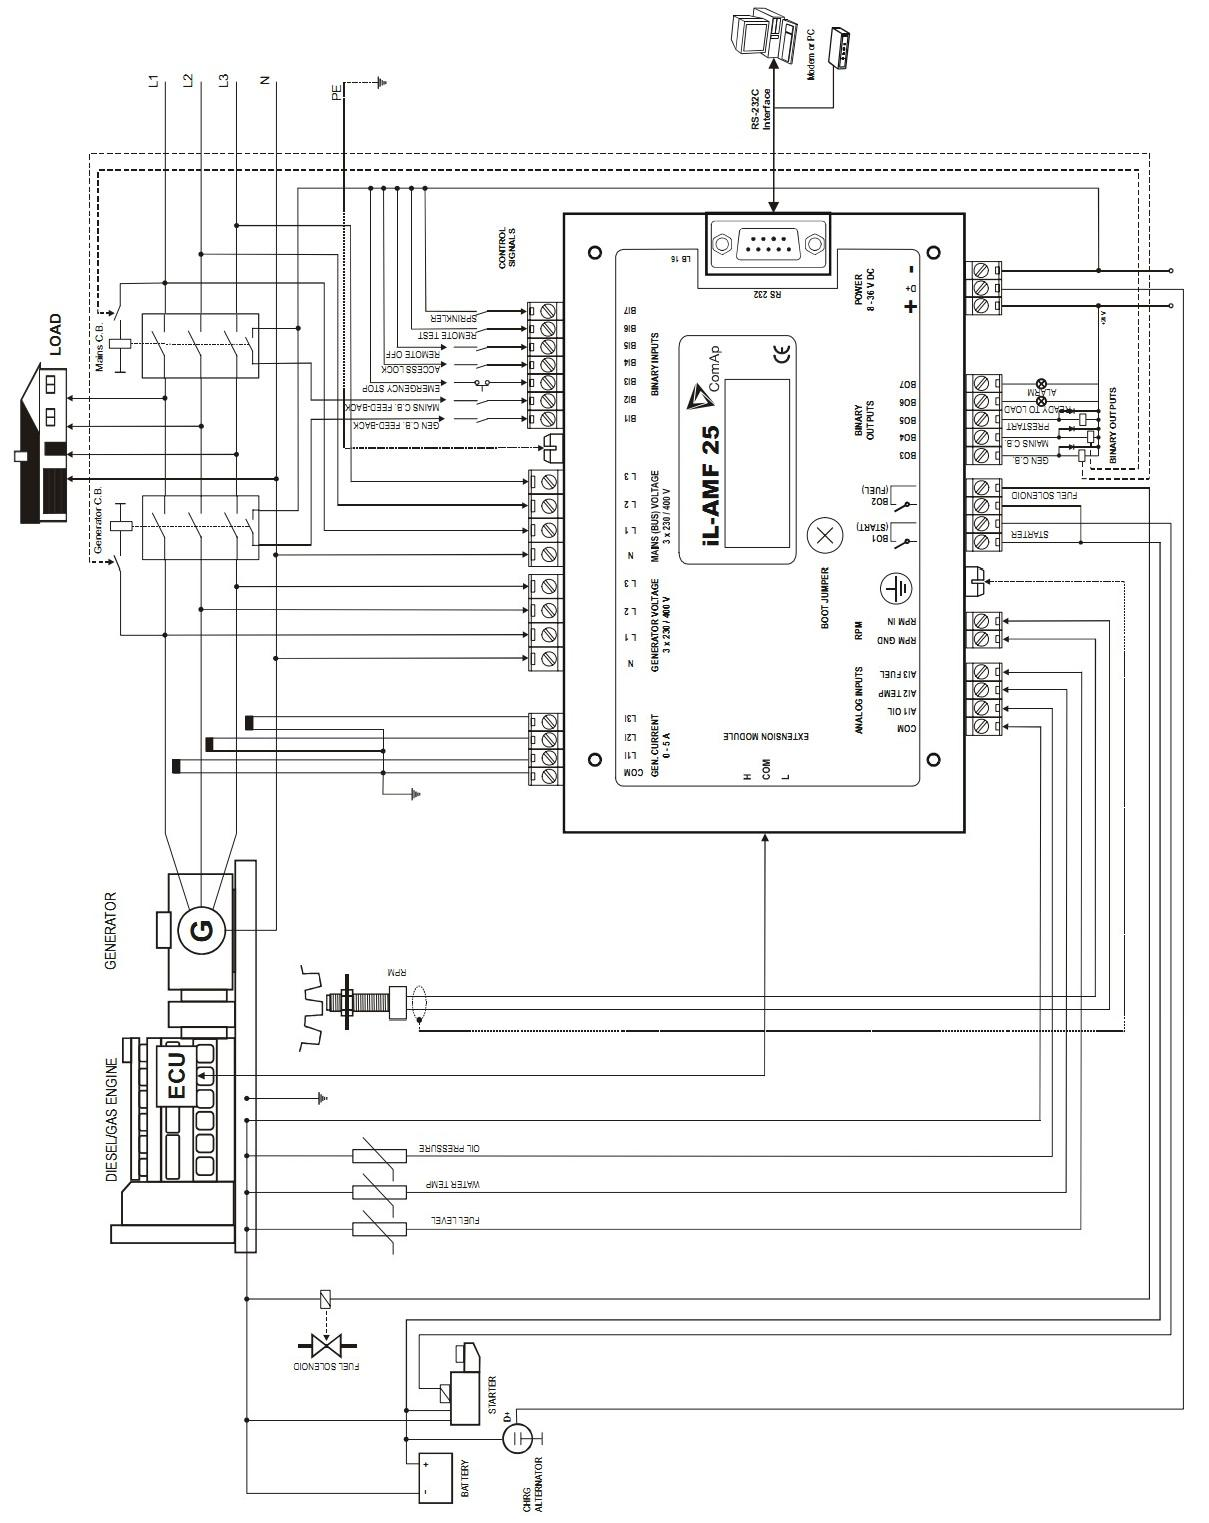 201210228323863 permanent electron co ,ltd,avr,sx440,sx460,r448,r230,stamford avr sx440 avr wiring diagram at crackthecode.co